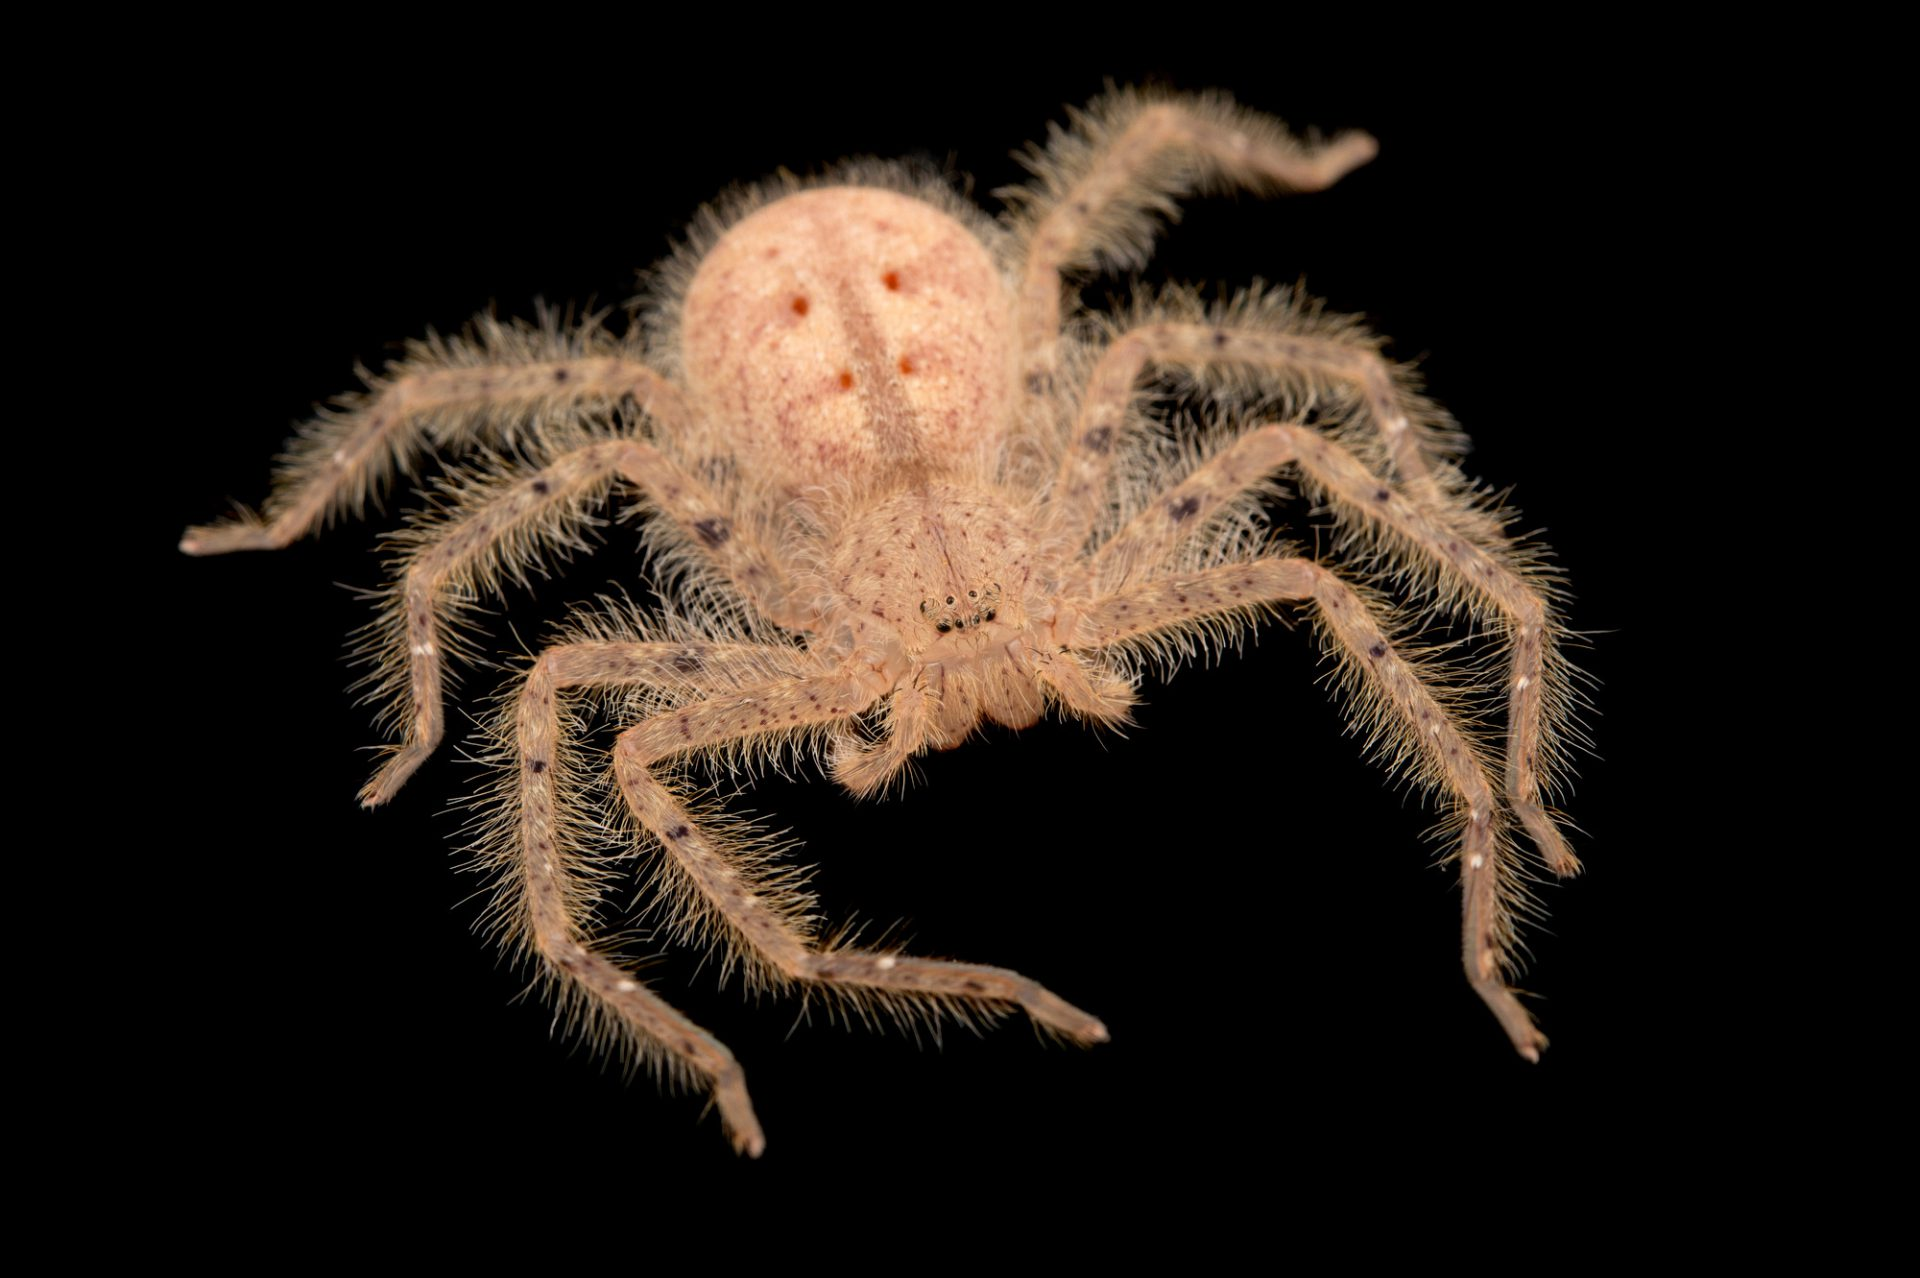 Photo: Malaysian orange huntsman spider, often called the David Bowie spider (Heteropoda davidbowie) from a private collection.